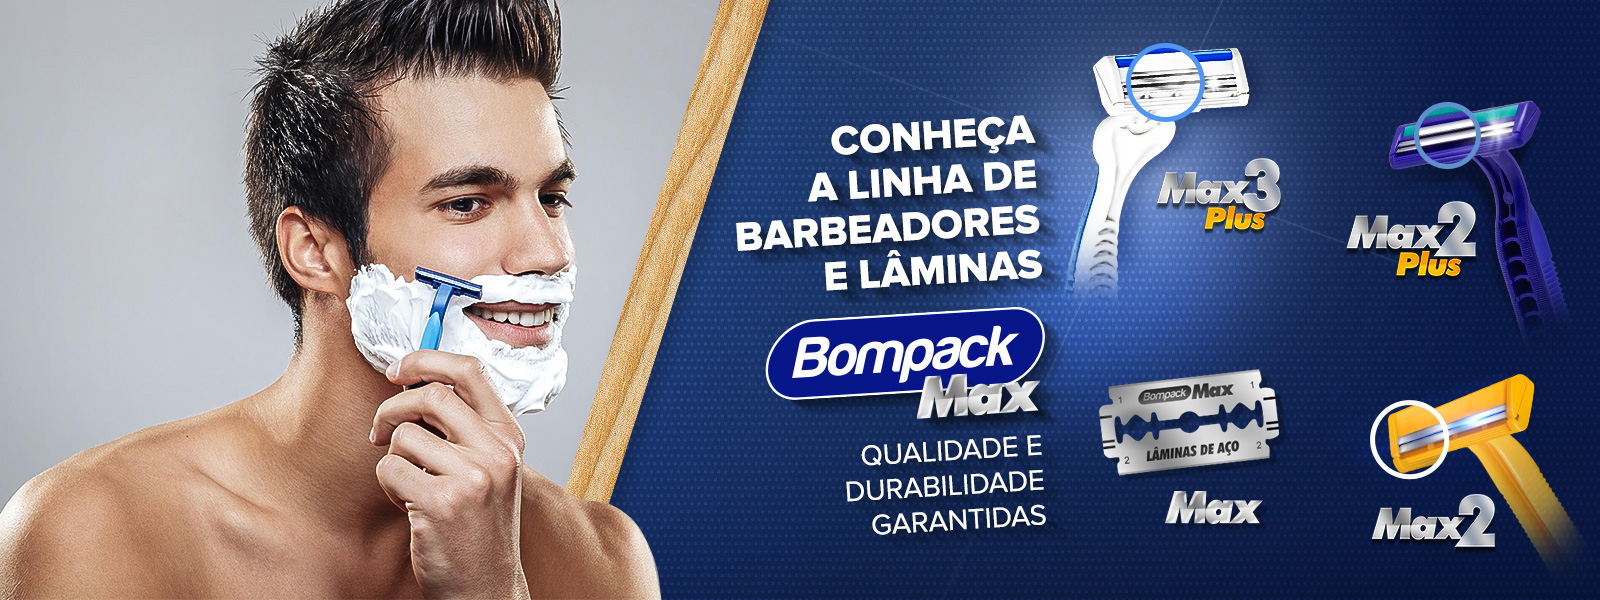 ref_1_Embrast_Banner_Barbeadores_1600x600